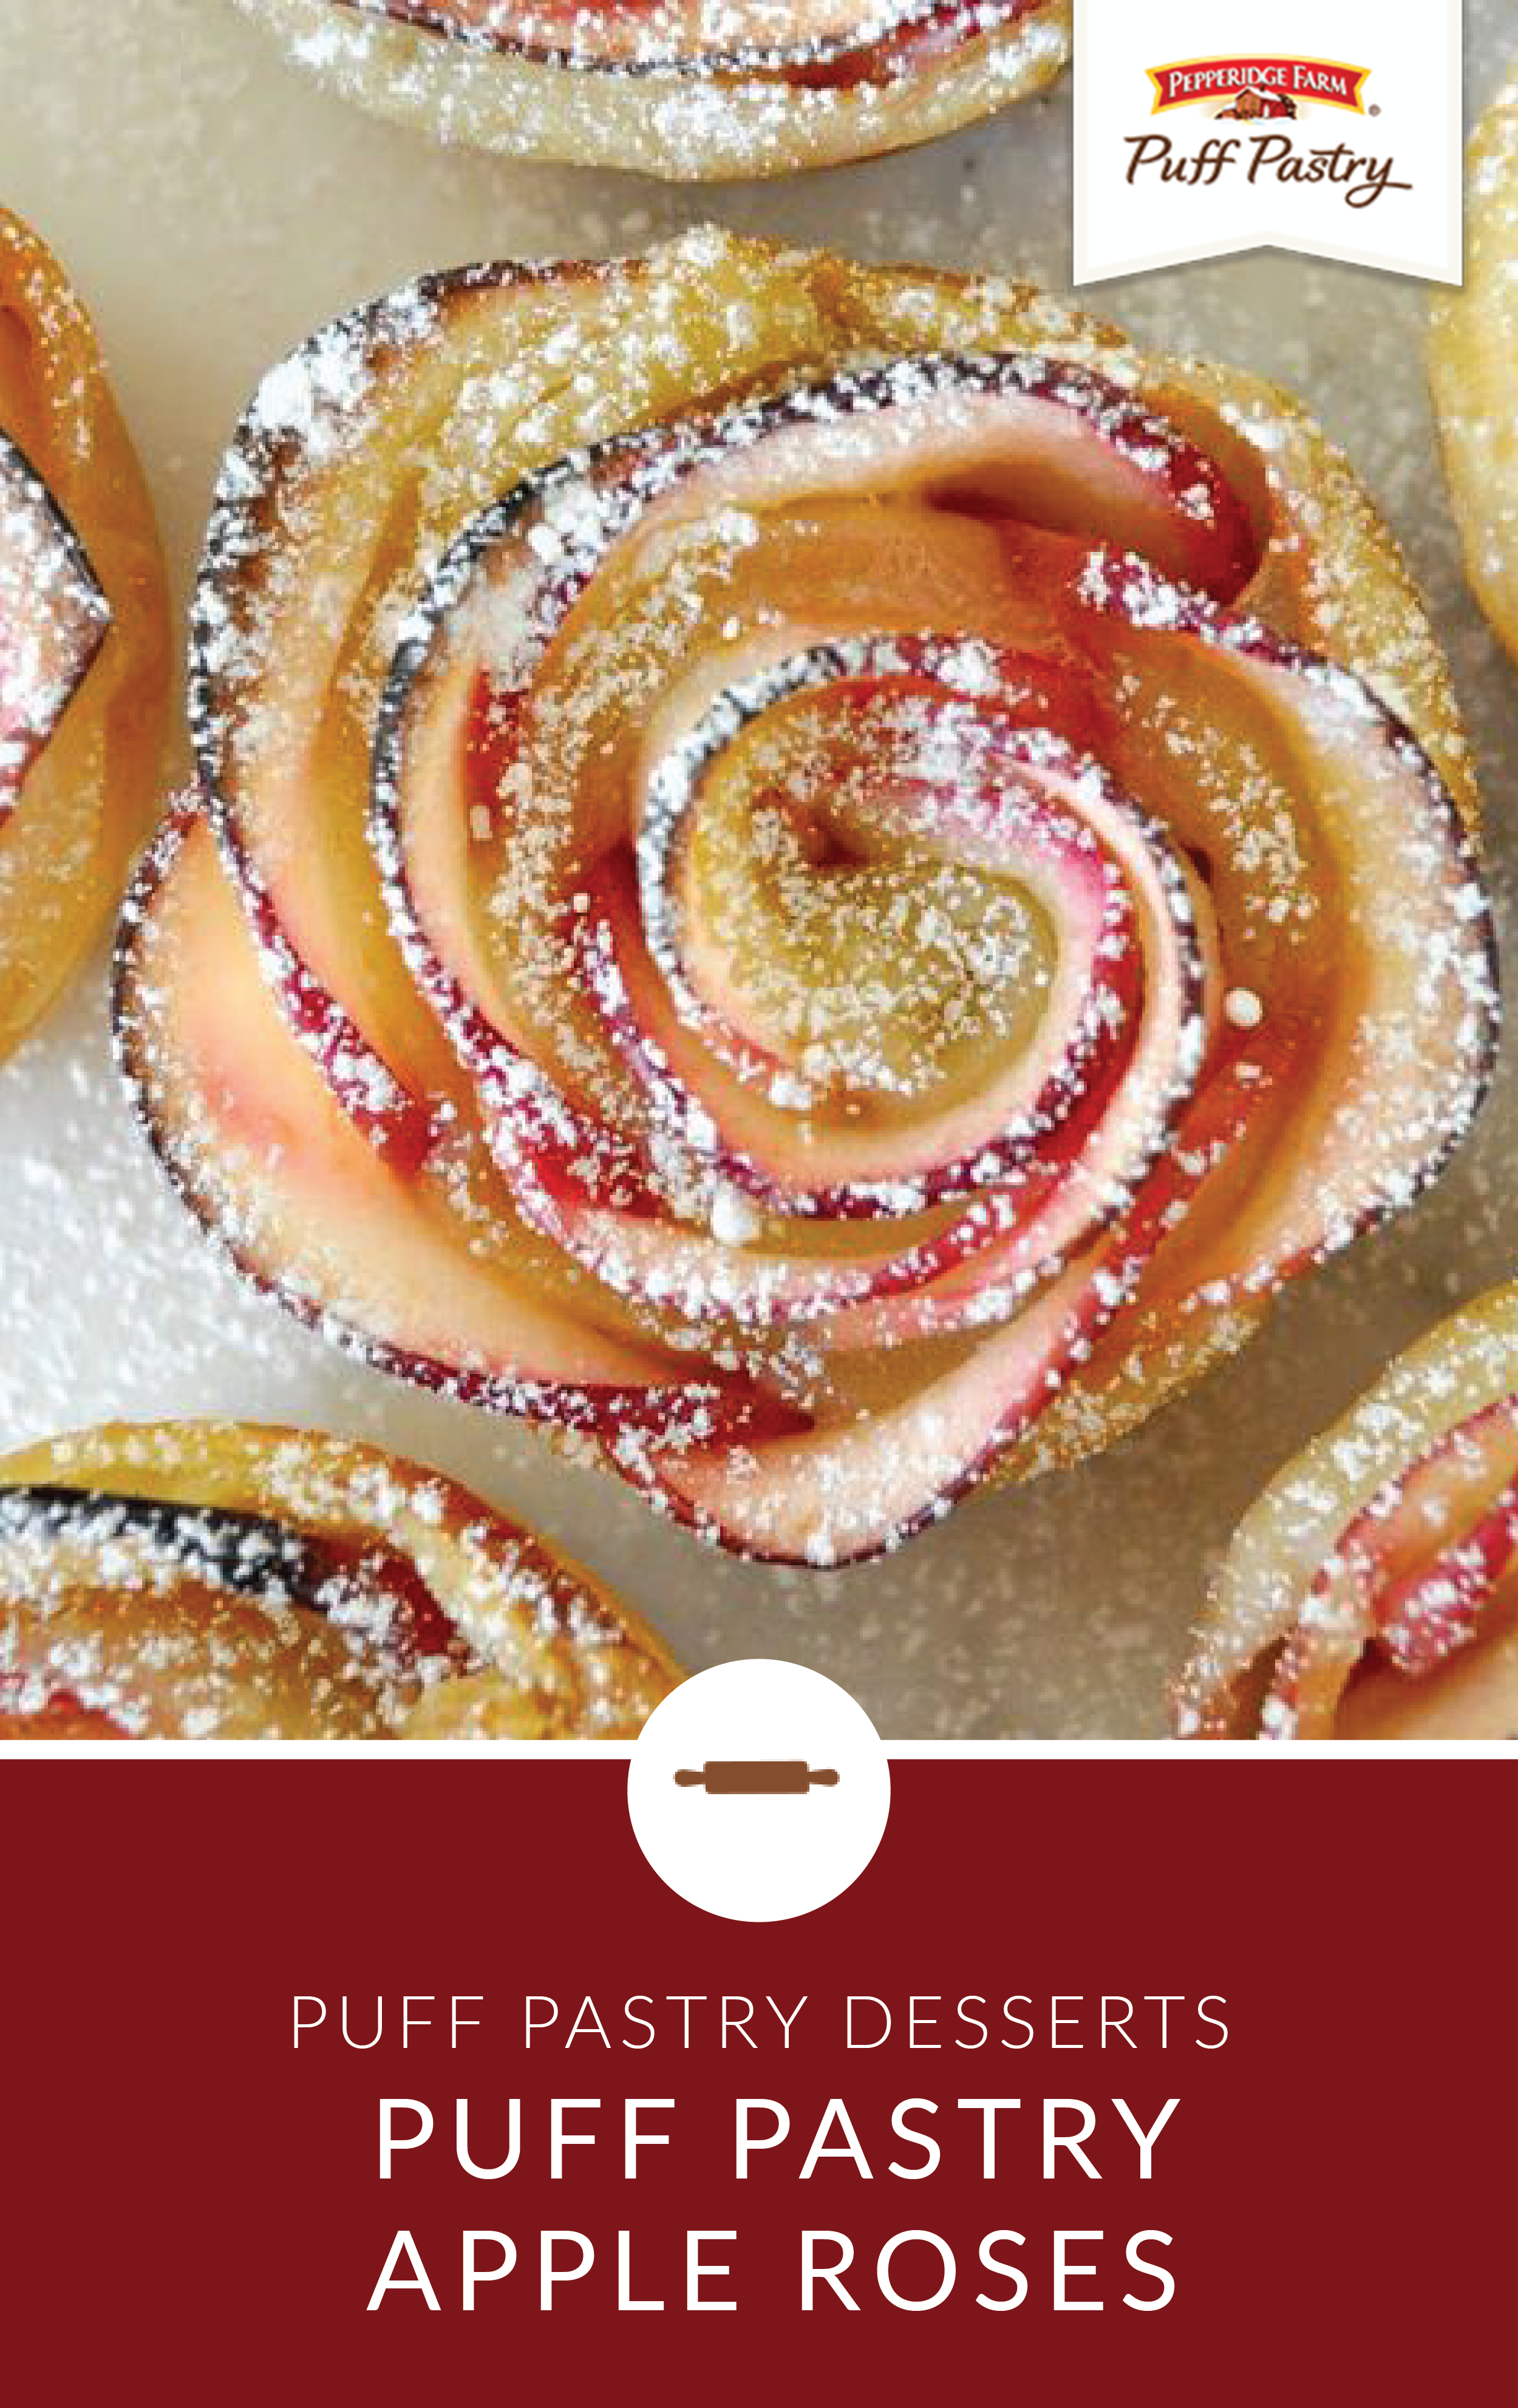 Apple Roses - Puff Pastry